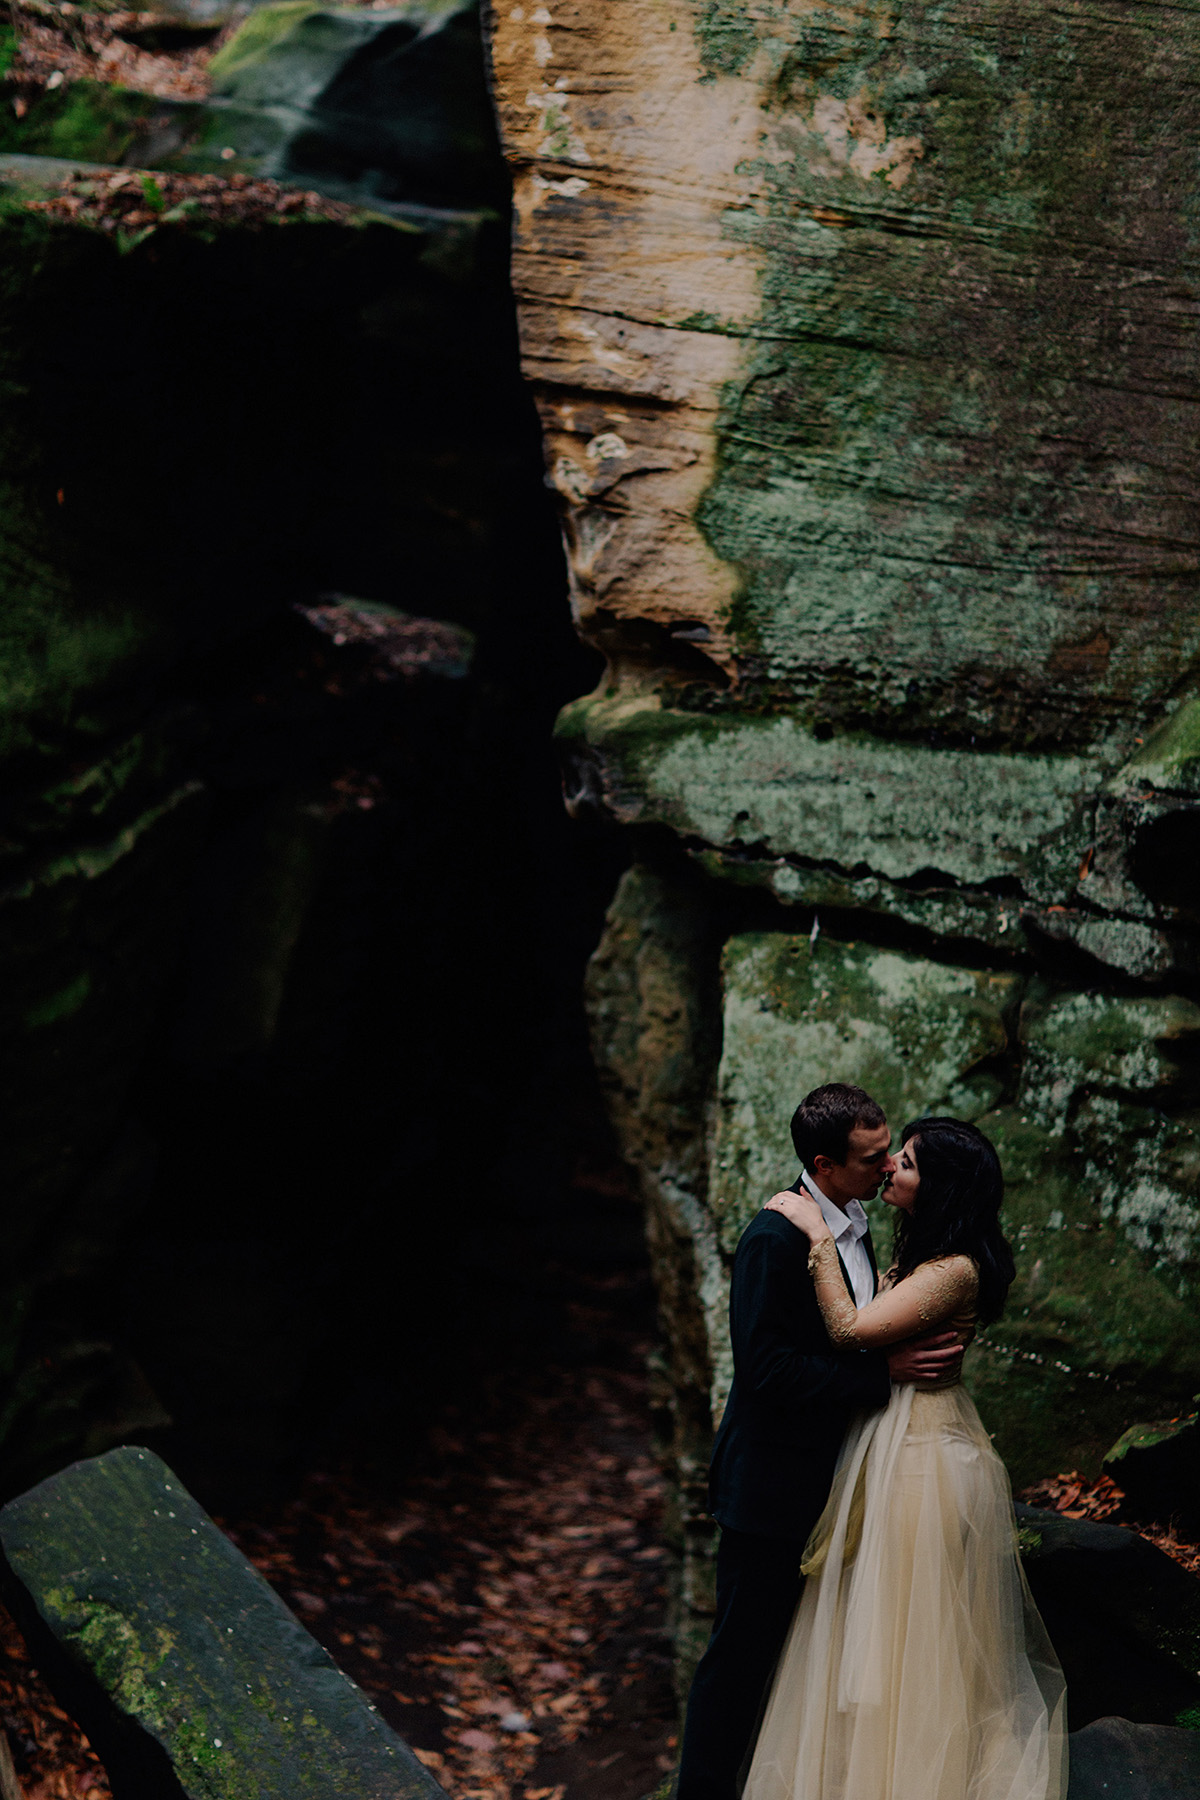 Engagement session at Cuyahoga Valley National Park